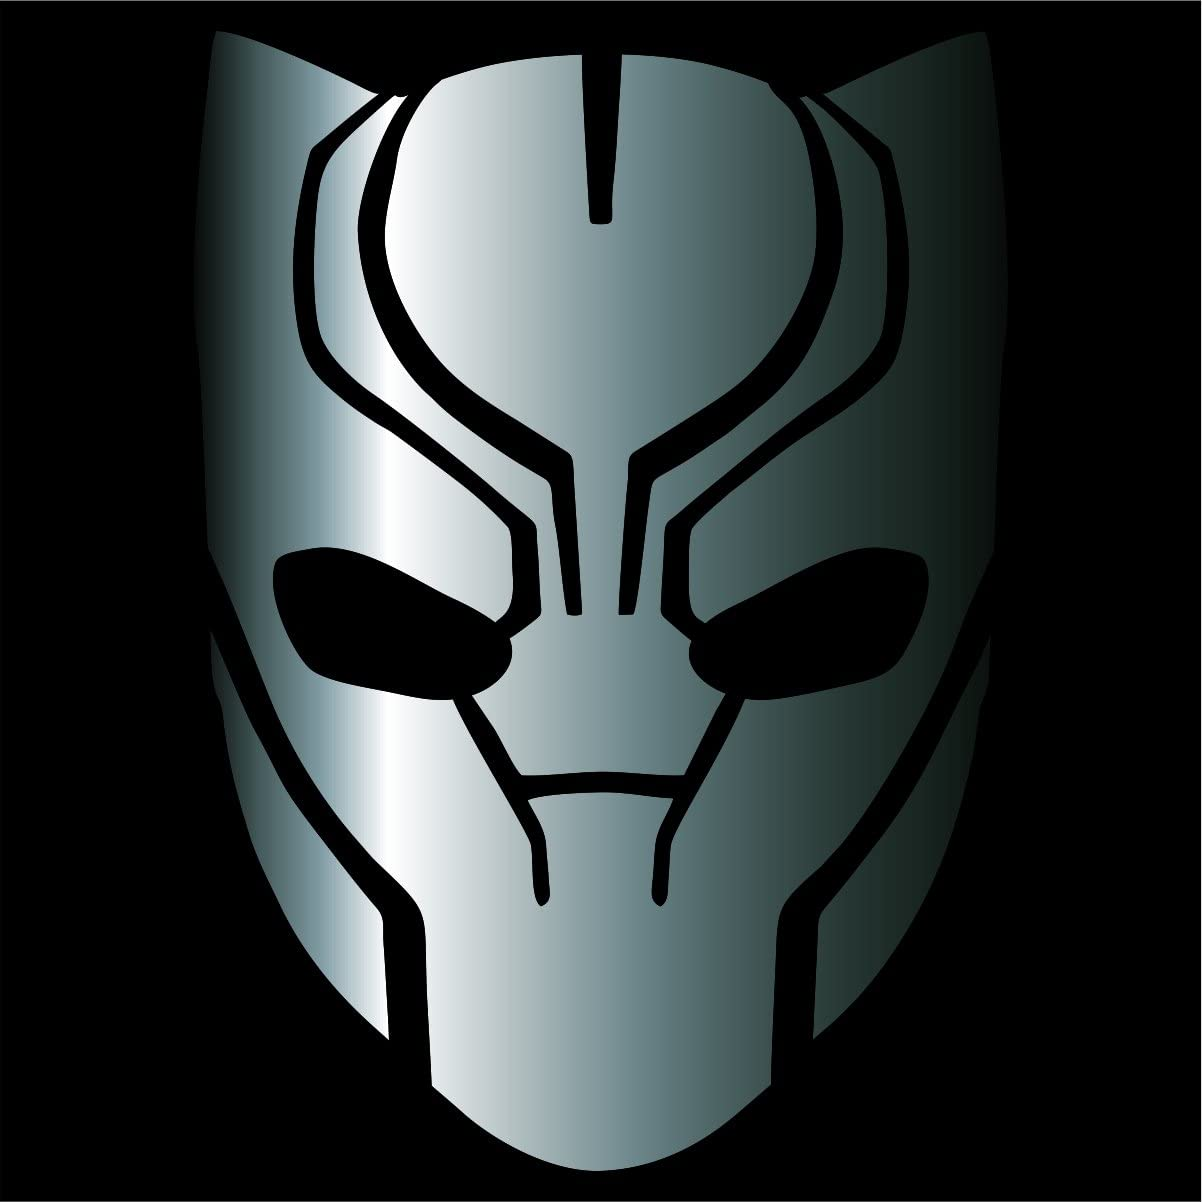 MARVEL/'S BLACK PANTHER DECAL FOR CAR// LAPTOP AND MORE PICK 4 SIZE AND 12 COLOR